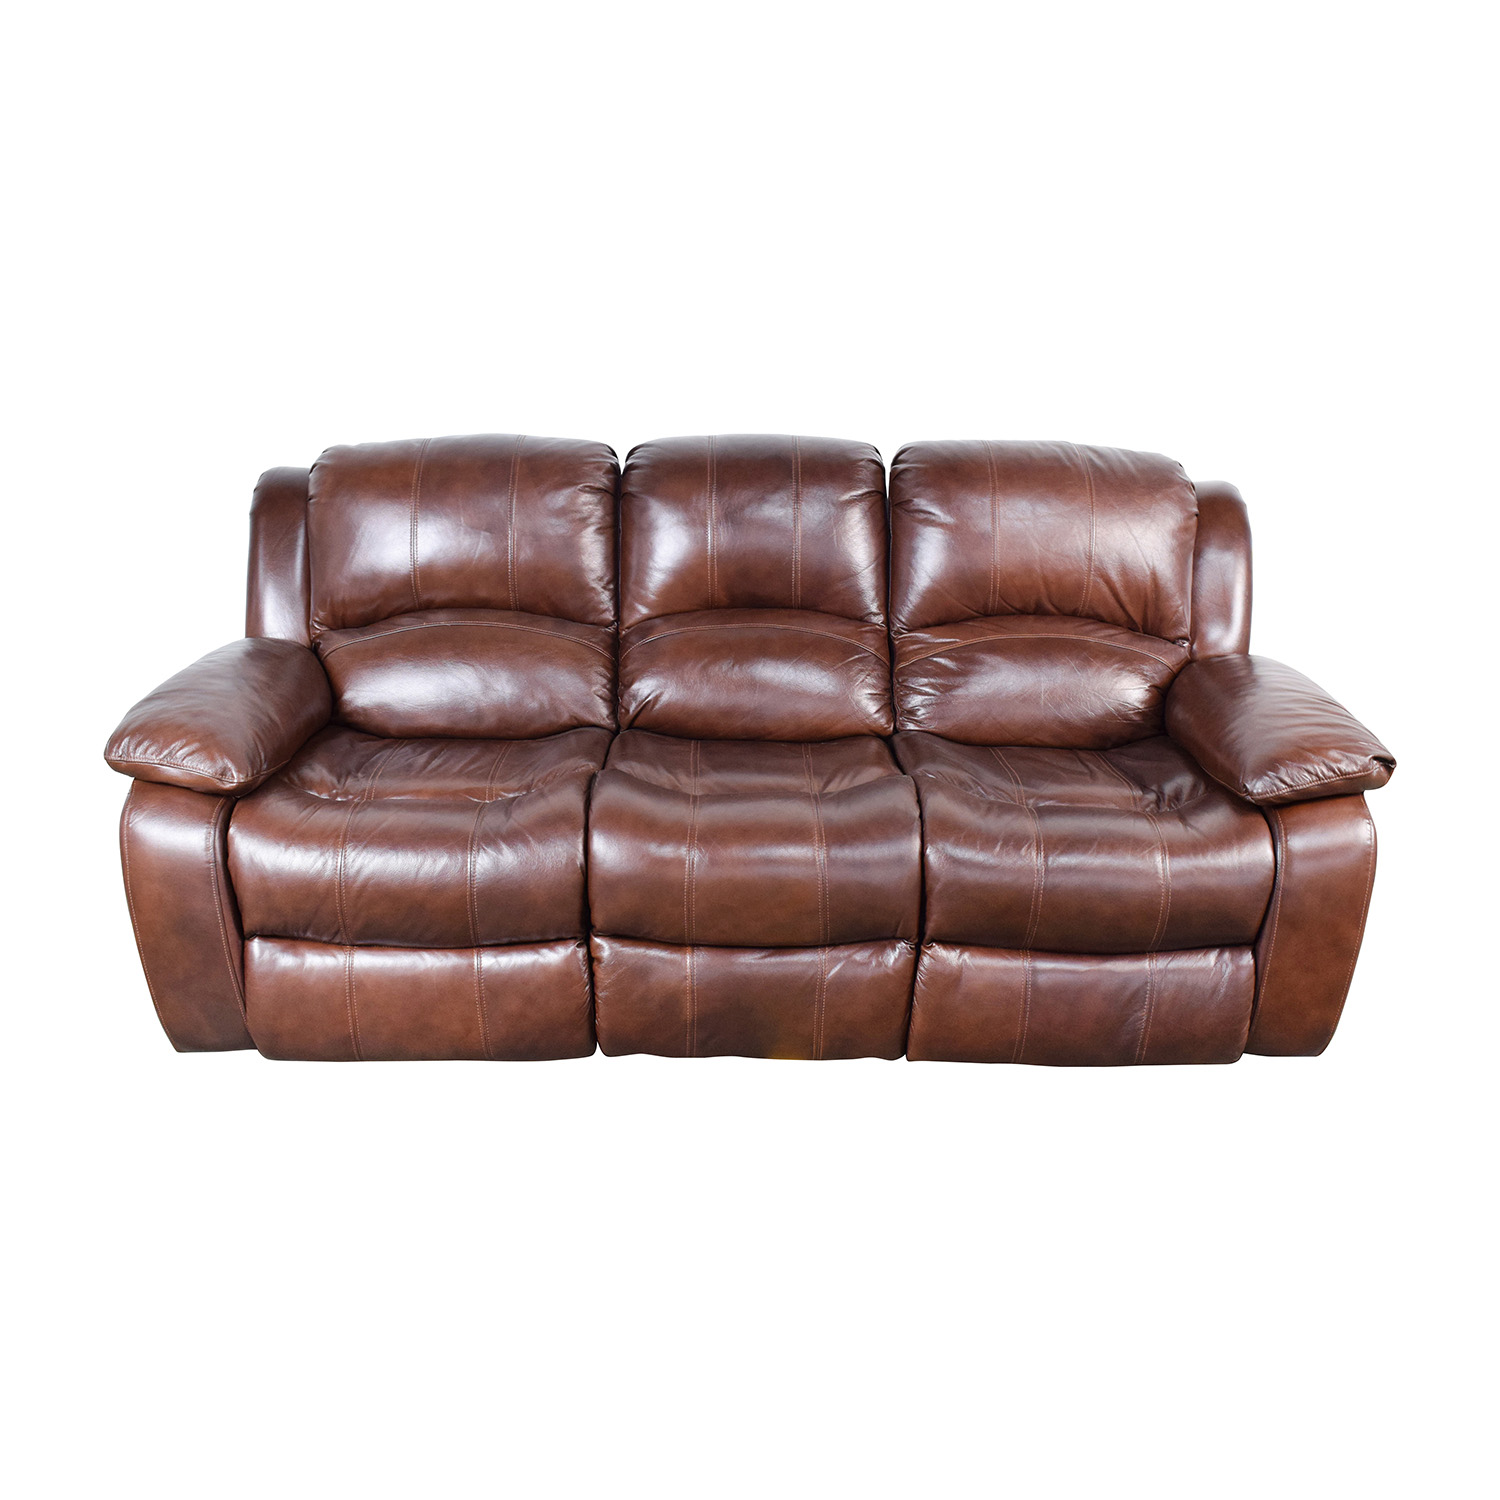 51 Off Raymour Flanigan Raymour Flanigan Bryant Ii Leather Power Reclining Sofa Sofas